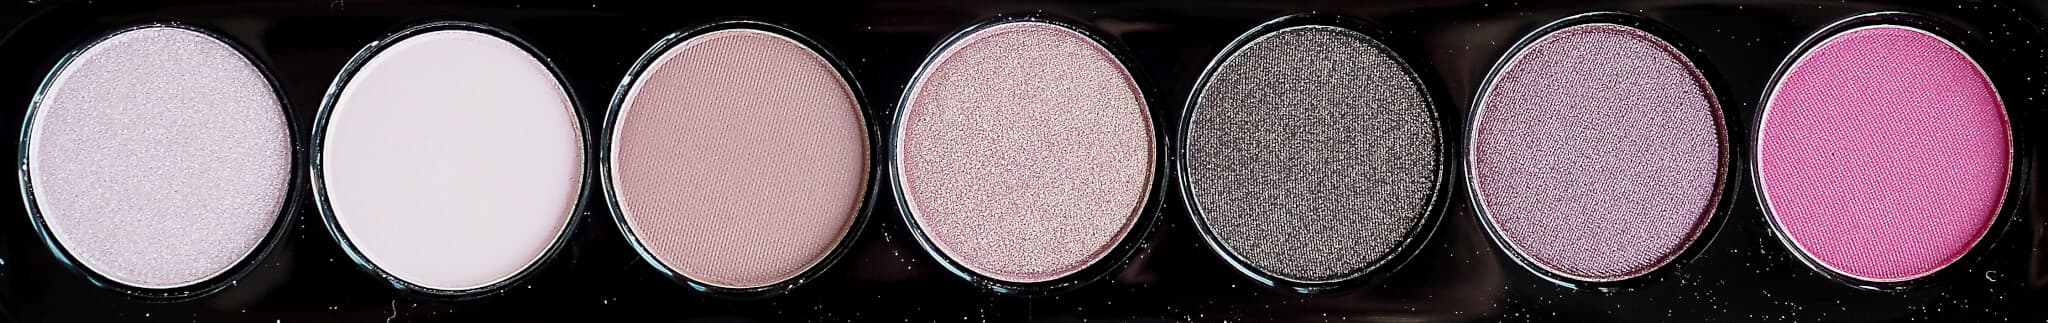 Opinia MARC JACOBS EYE-CONIC PROVOCOUTURE